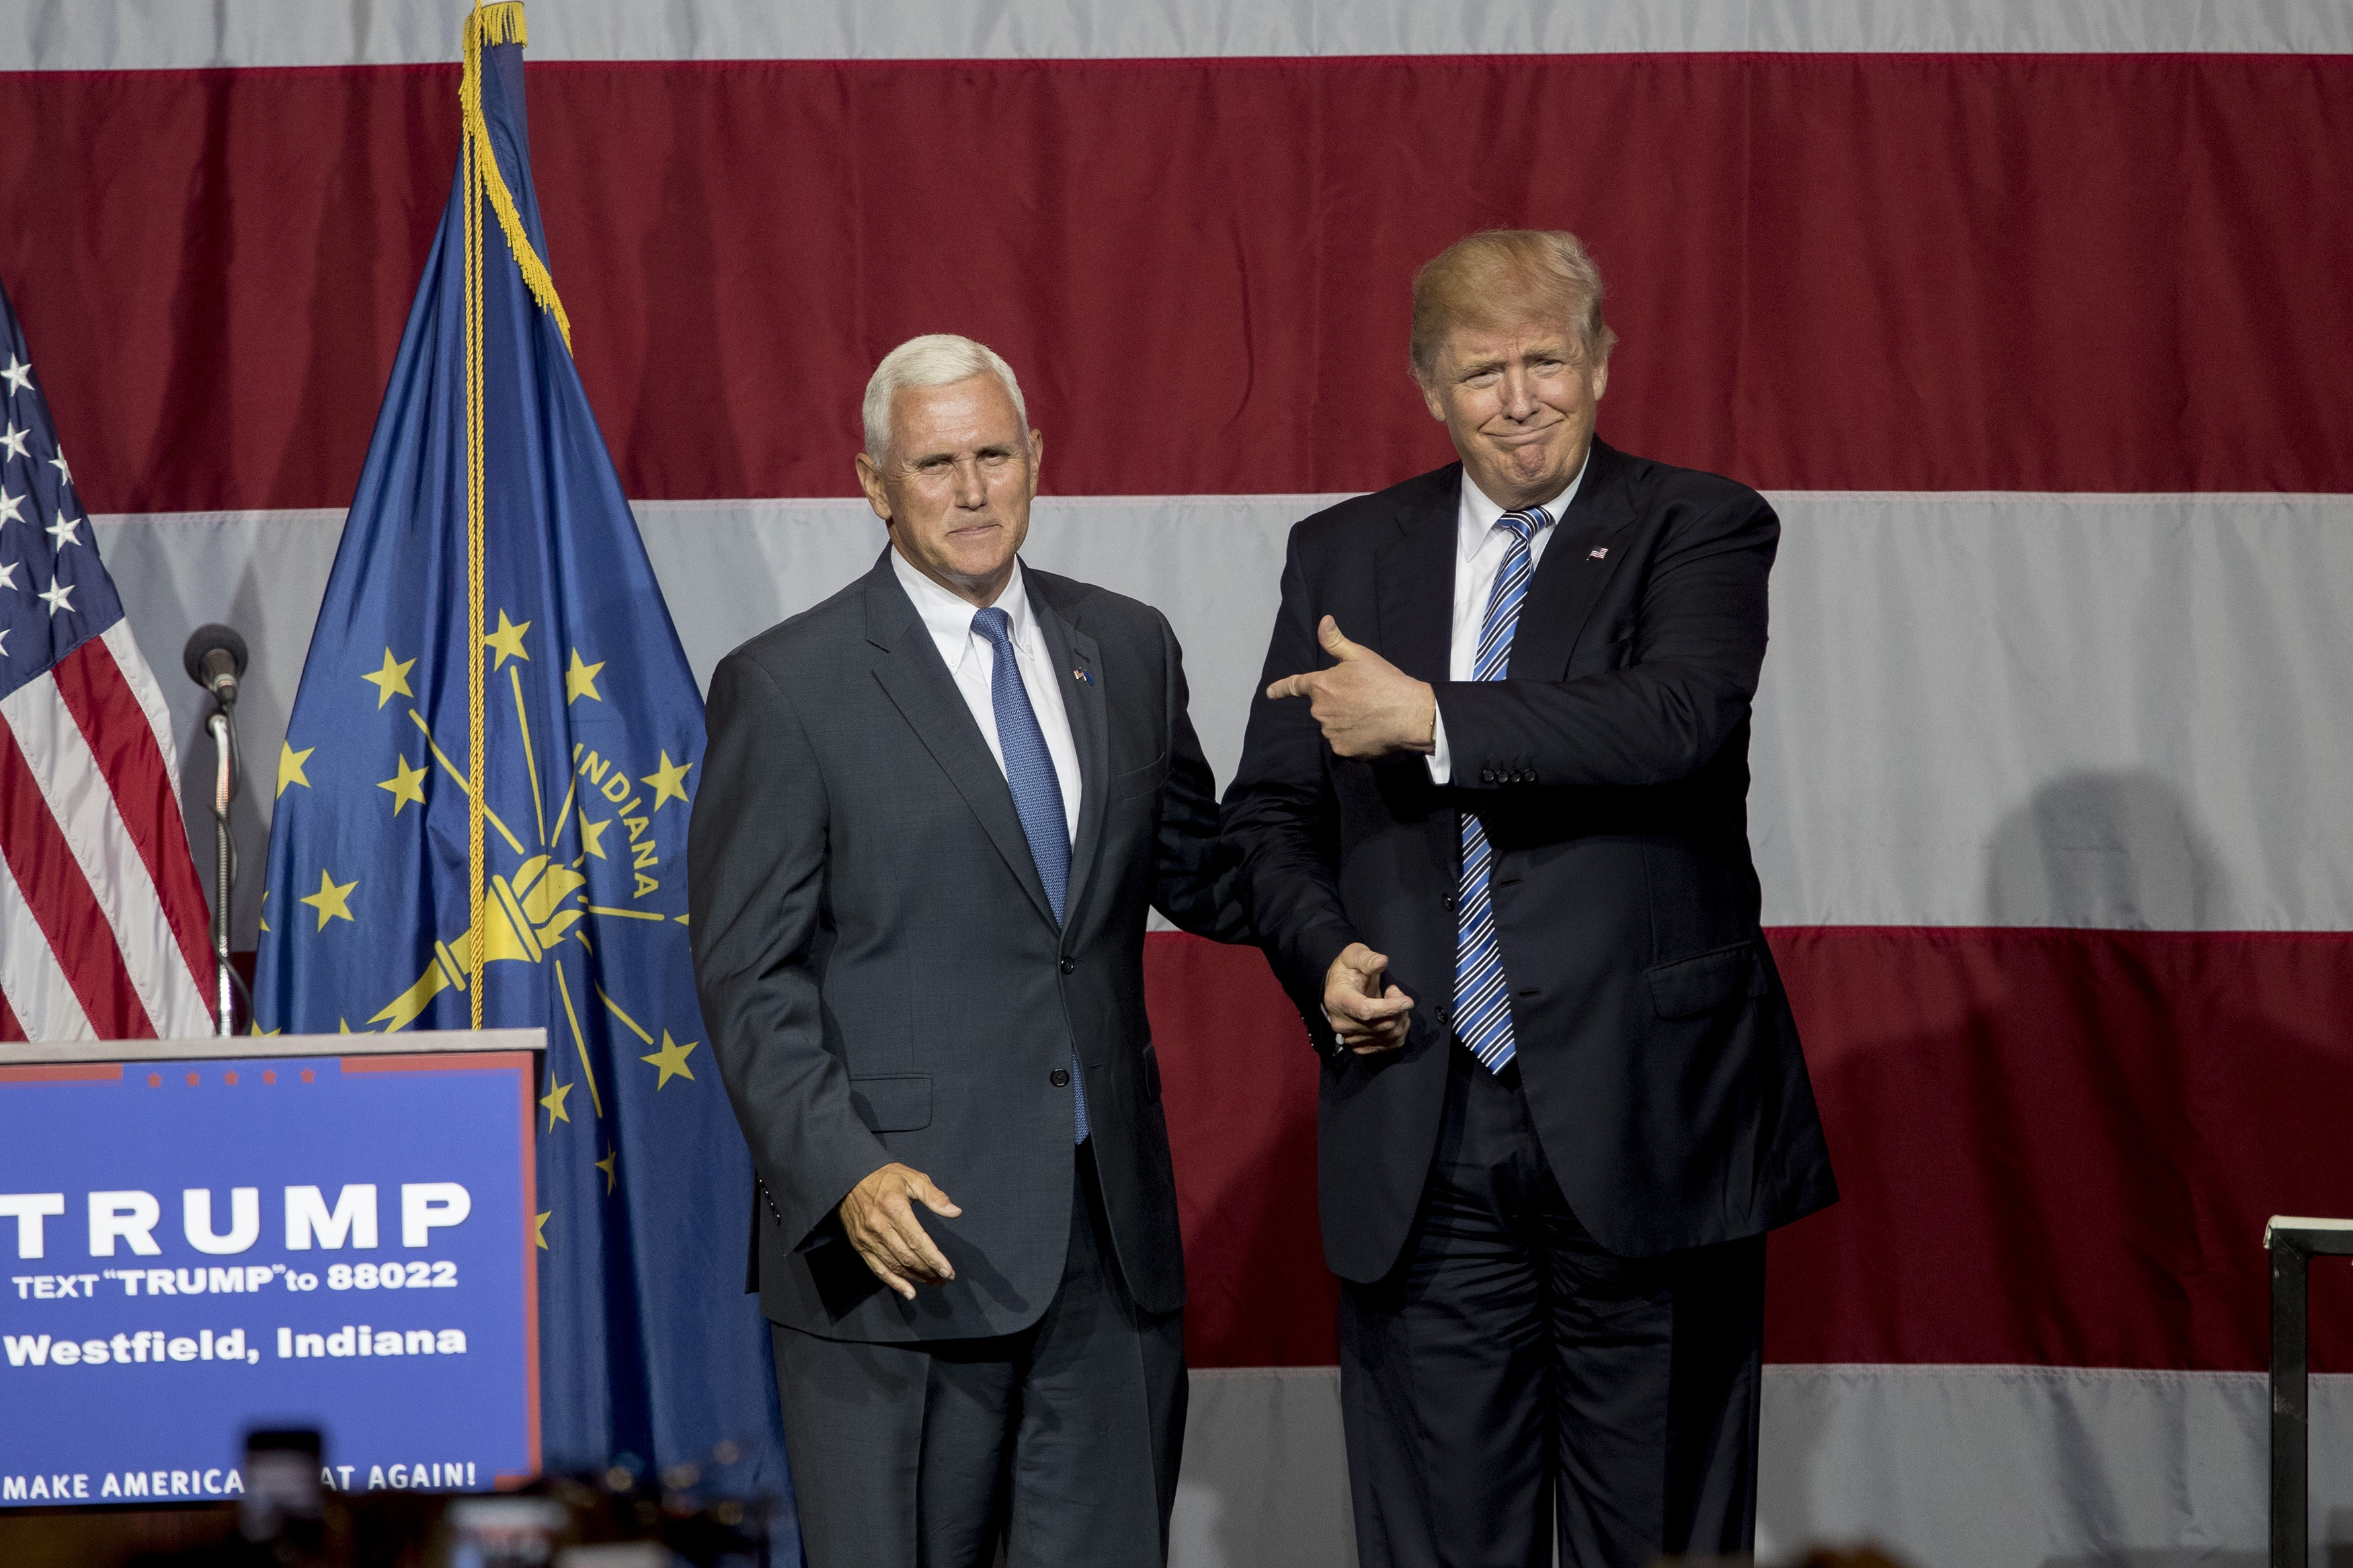 Donald Trump's selection of Indiana Gov. Michael R. Pence as his running mate could shore up his standing with conservatives.